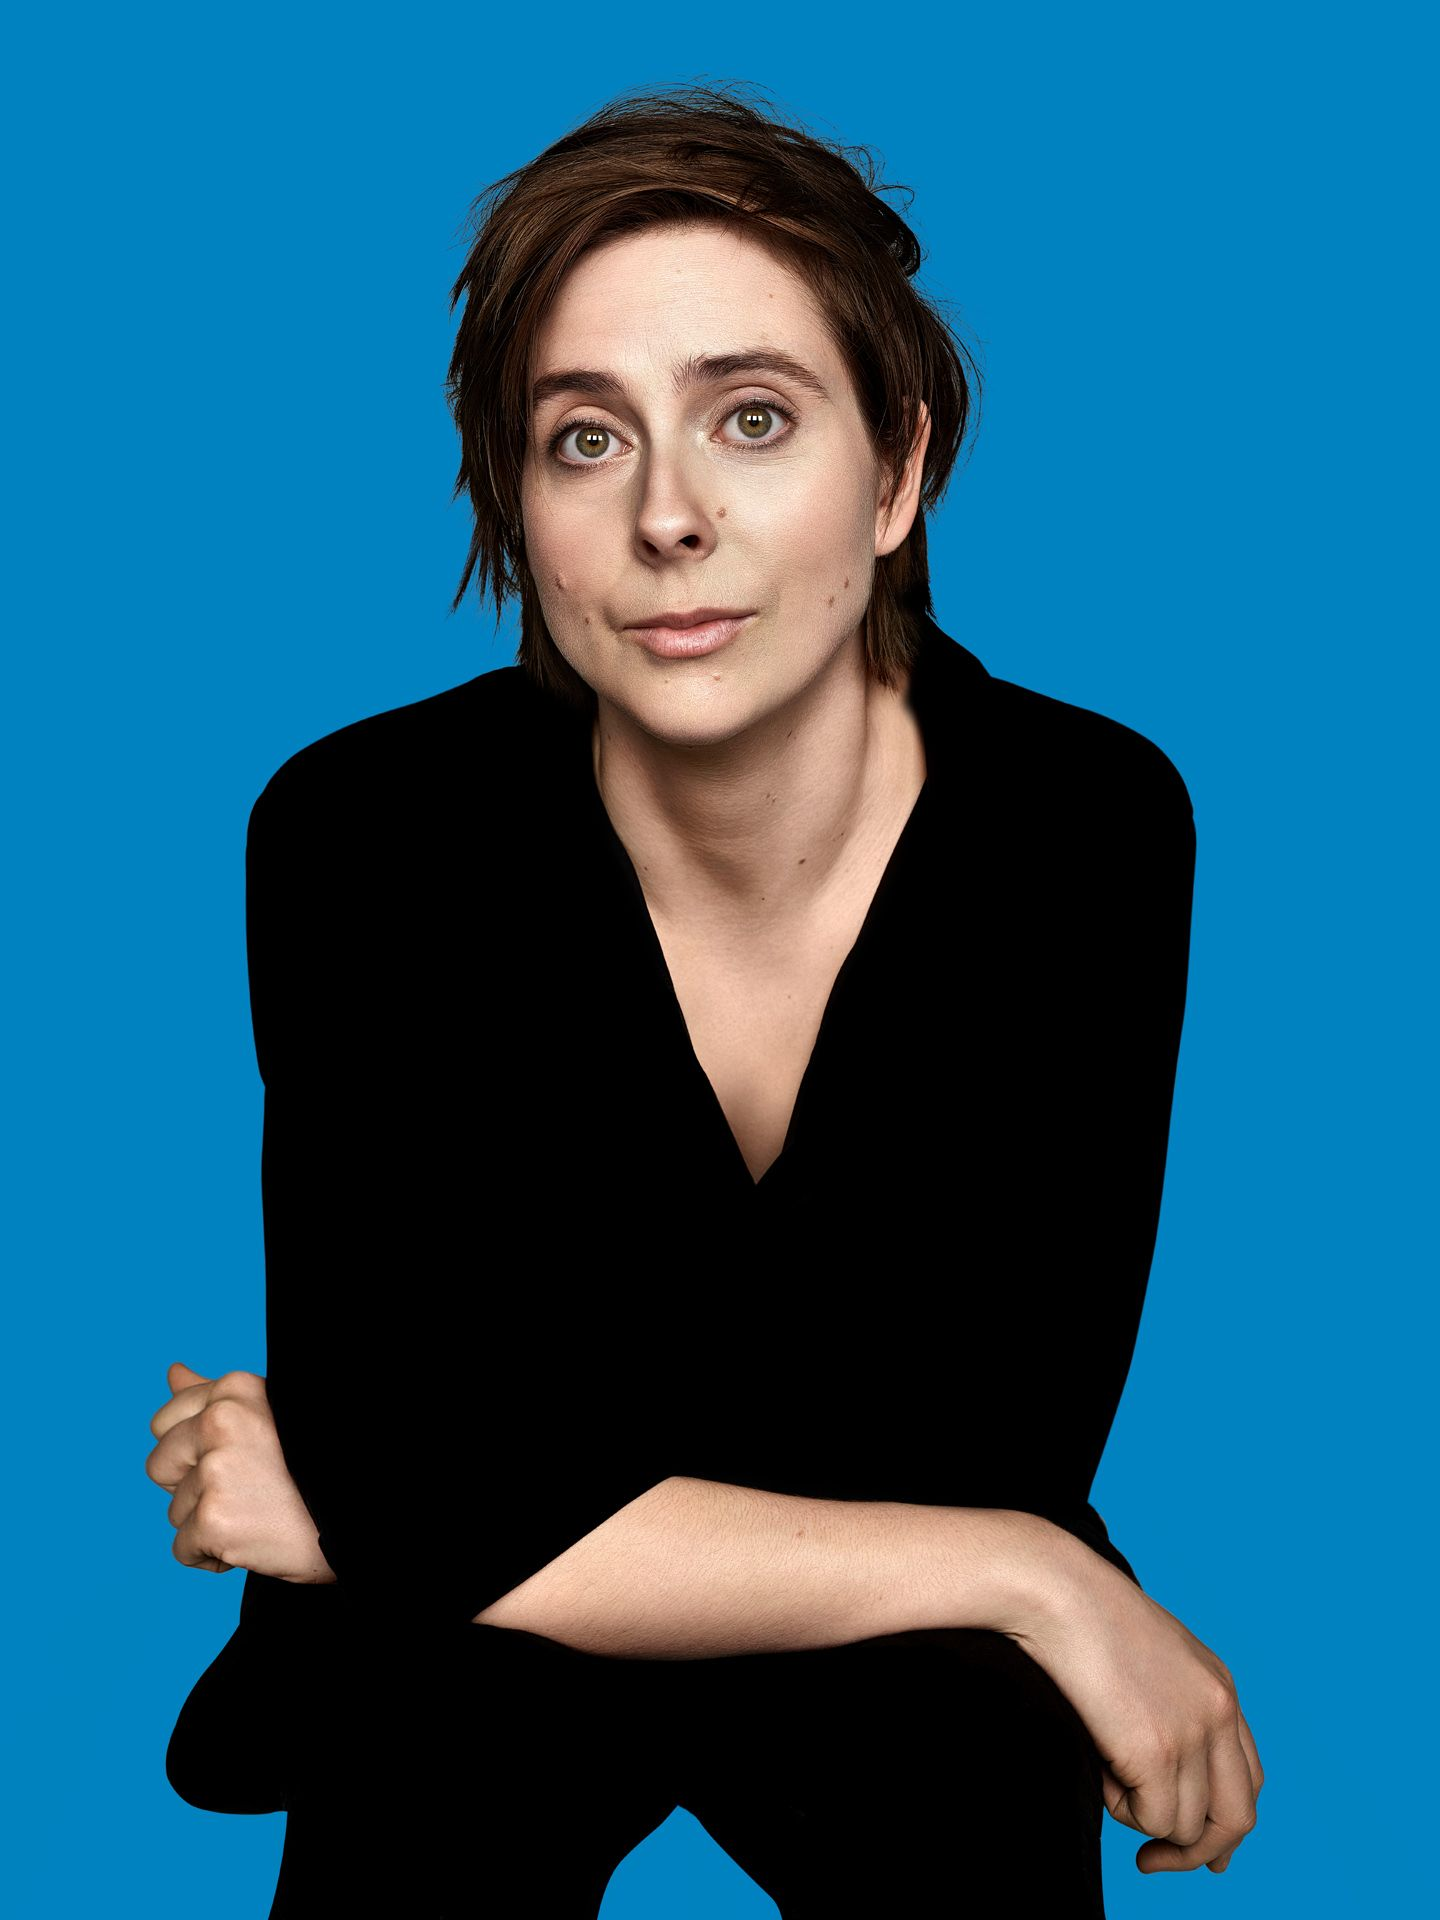 actress Eve Landry on blue background by Maxyme G Delisle for Duceppe Theatre with Publicis